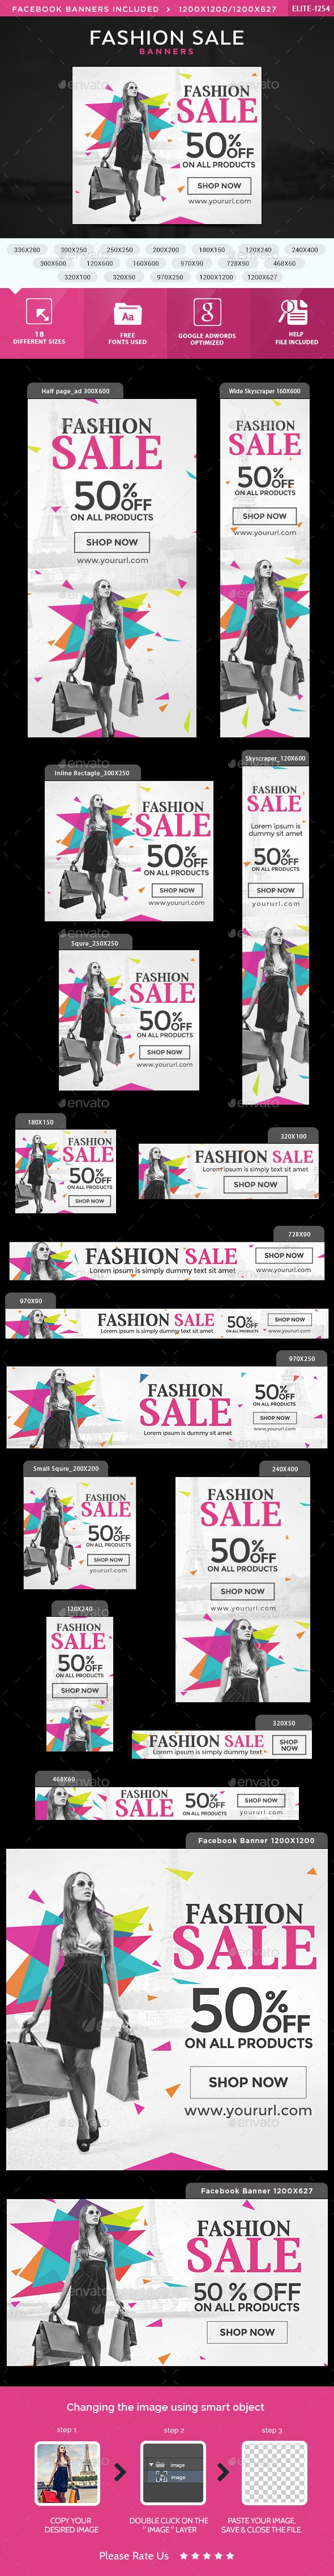 Fashion Sale Banners — Photoshop PSD #banner set #adroll • Available here → https://graphicriver.net/item/fashion-sale-banners/15159568?ref=pxcr